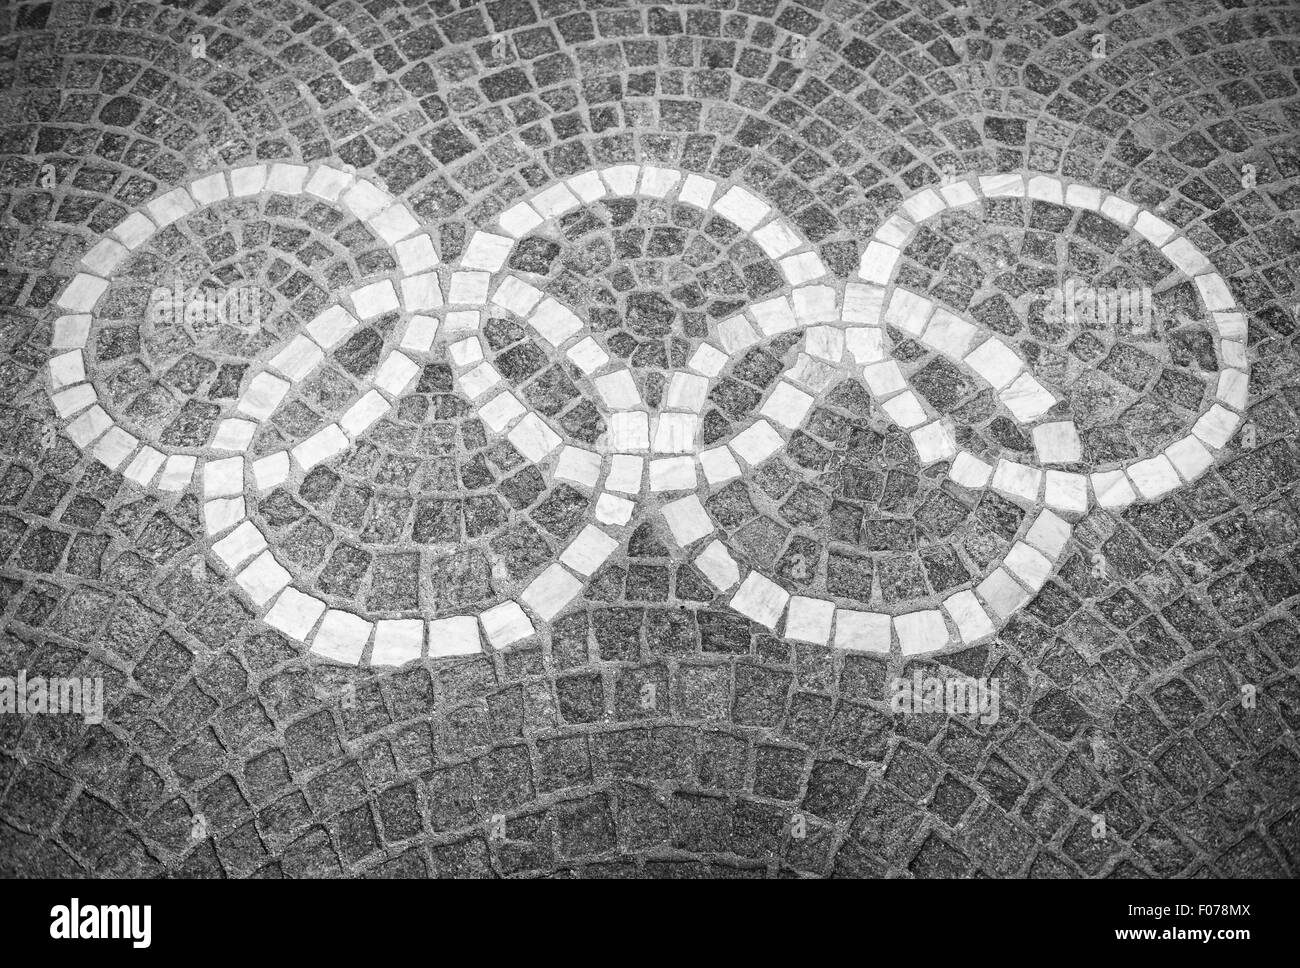 ROME, ITALY - JULY, 2012: Decorative Olympic rings logo set in stone blocks at the Foro Italico sports complex. - Stock Image